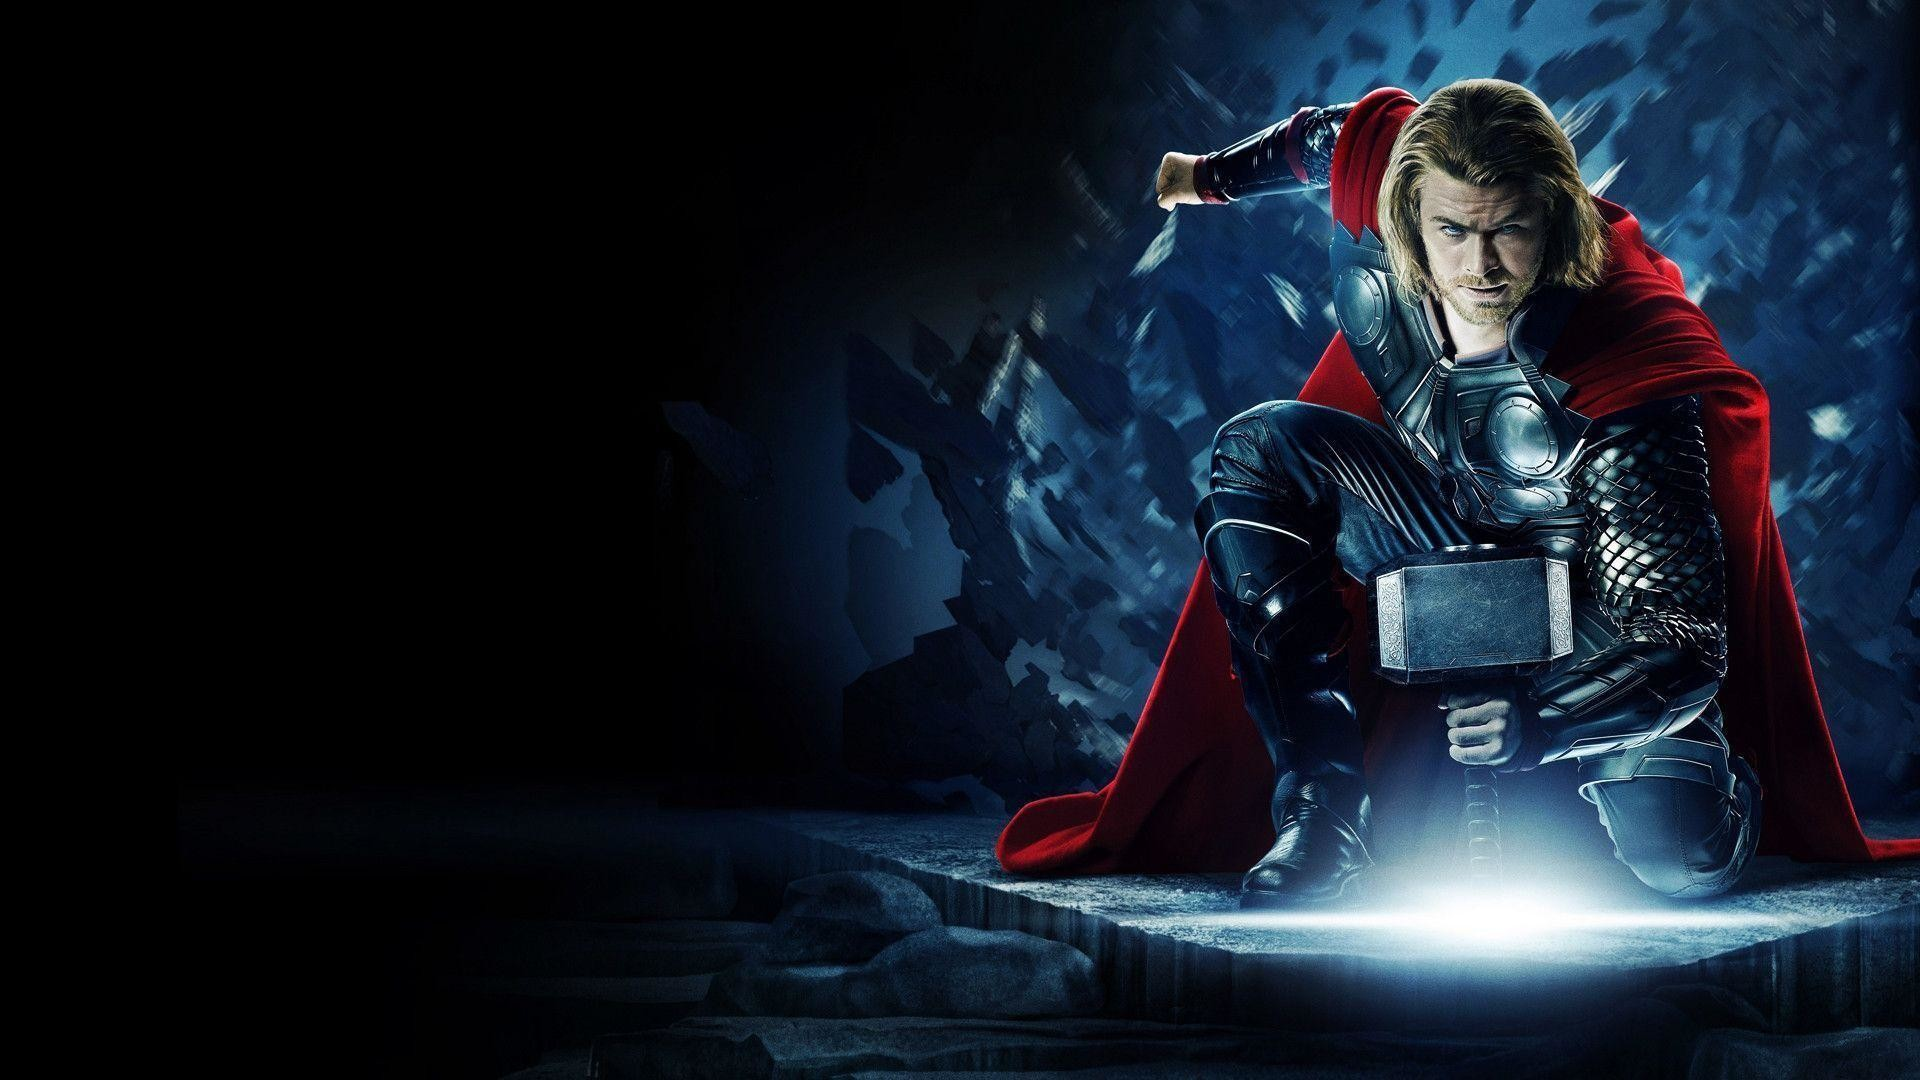 Res: 1920x1080, Thor Full HD Images & Photos | Free Art Wallpapers